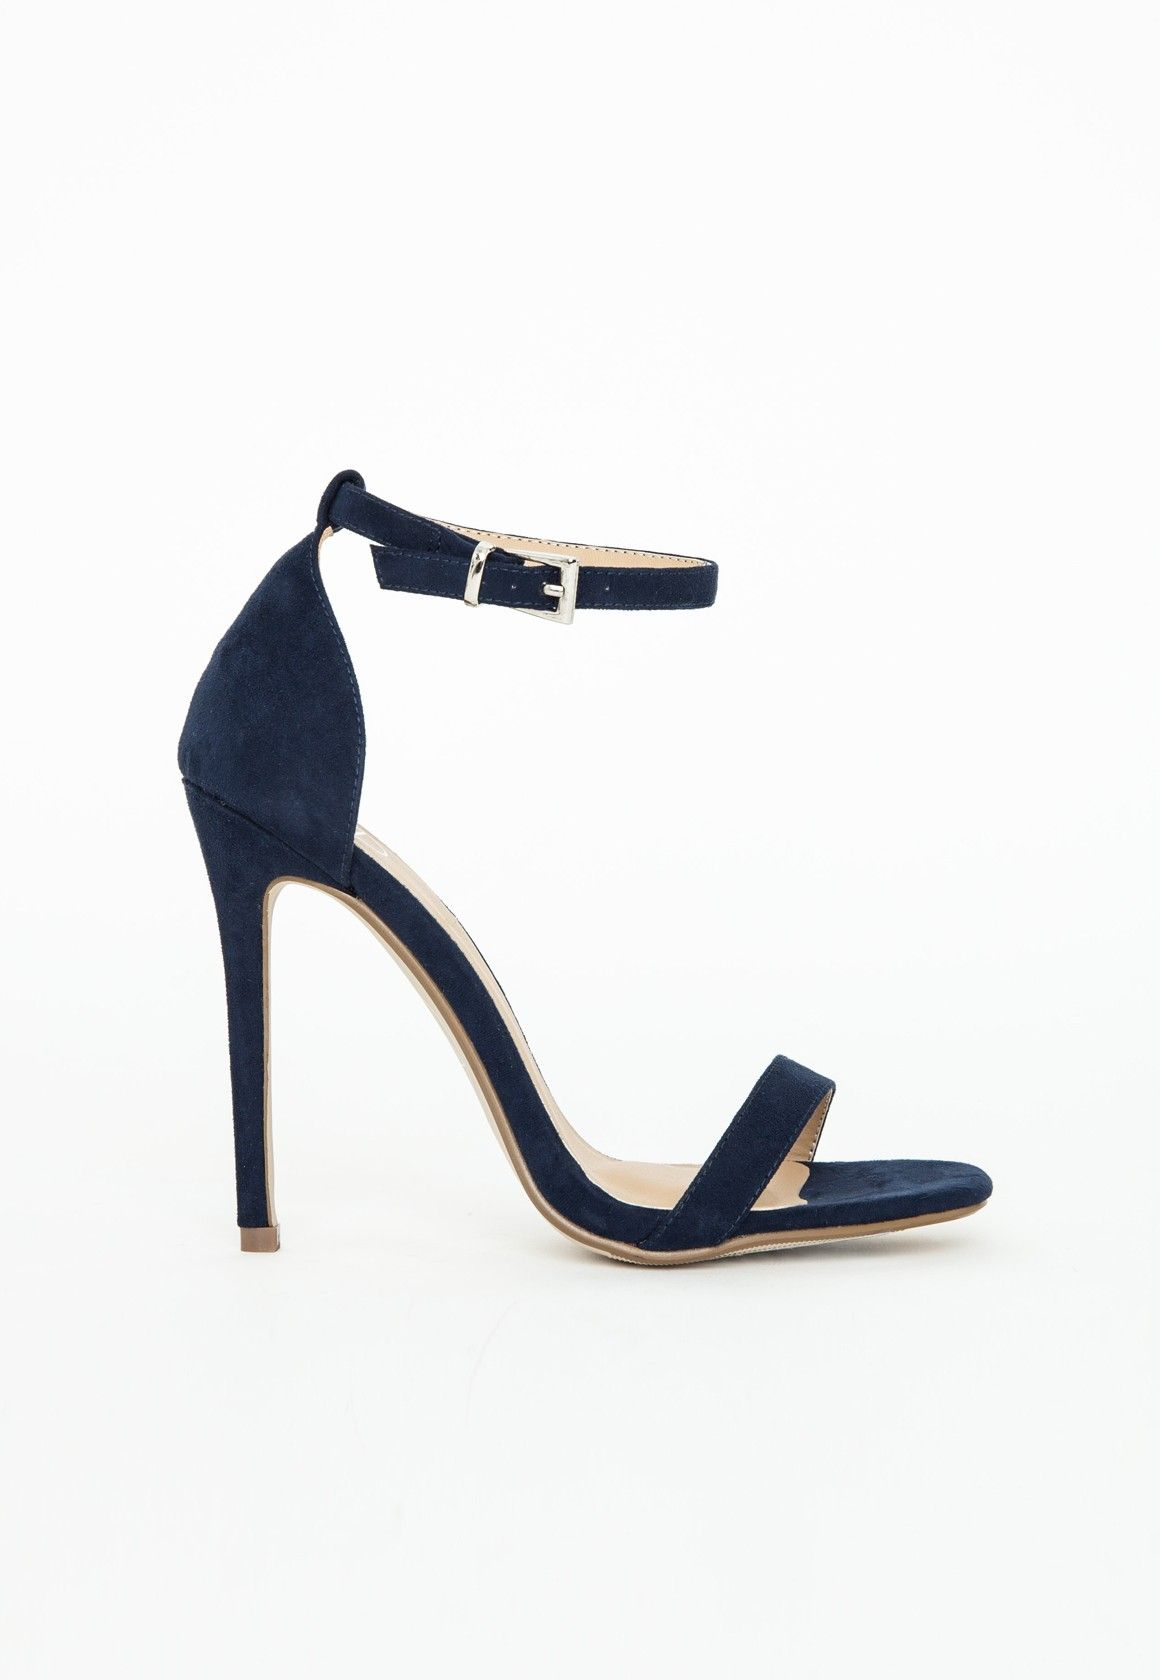 a73bdb6f432 Barely There Heeled Sandals Navy Faux Suede - Shoes - High Heels -  Missguided